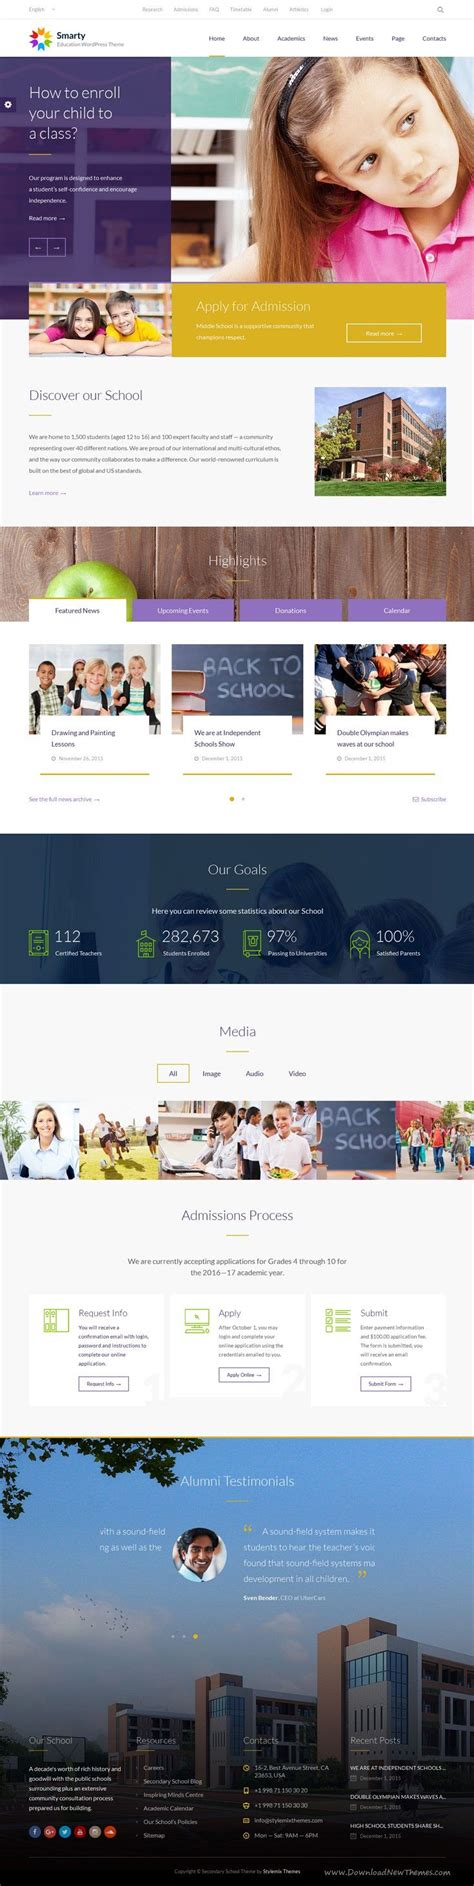 themes secondary education 1000 ideas about secondary school on pinterest